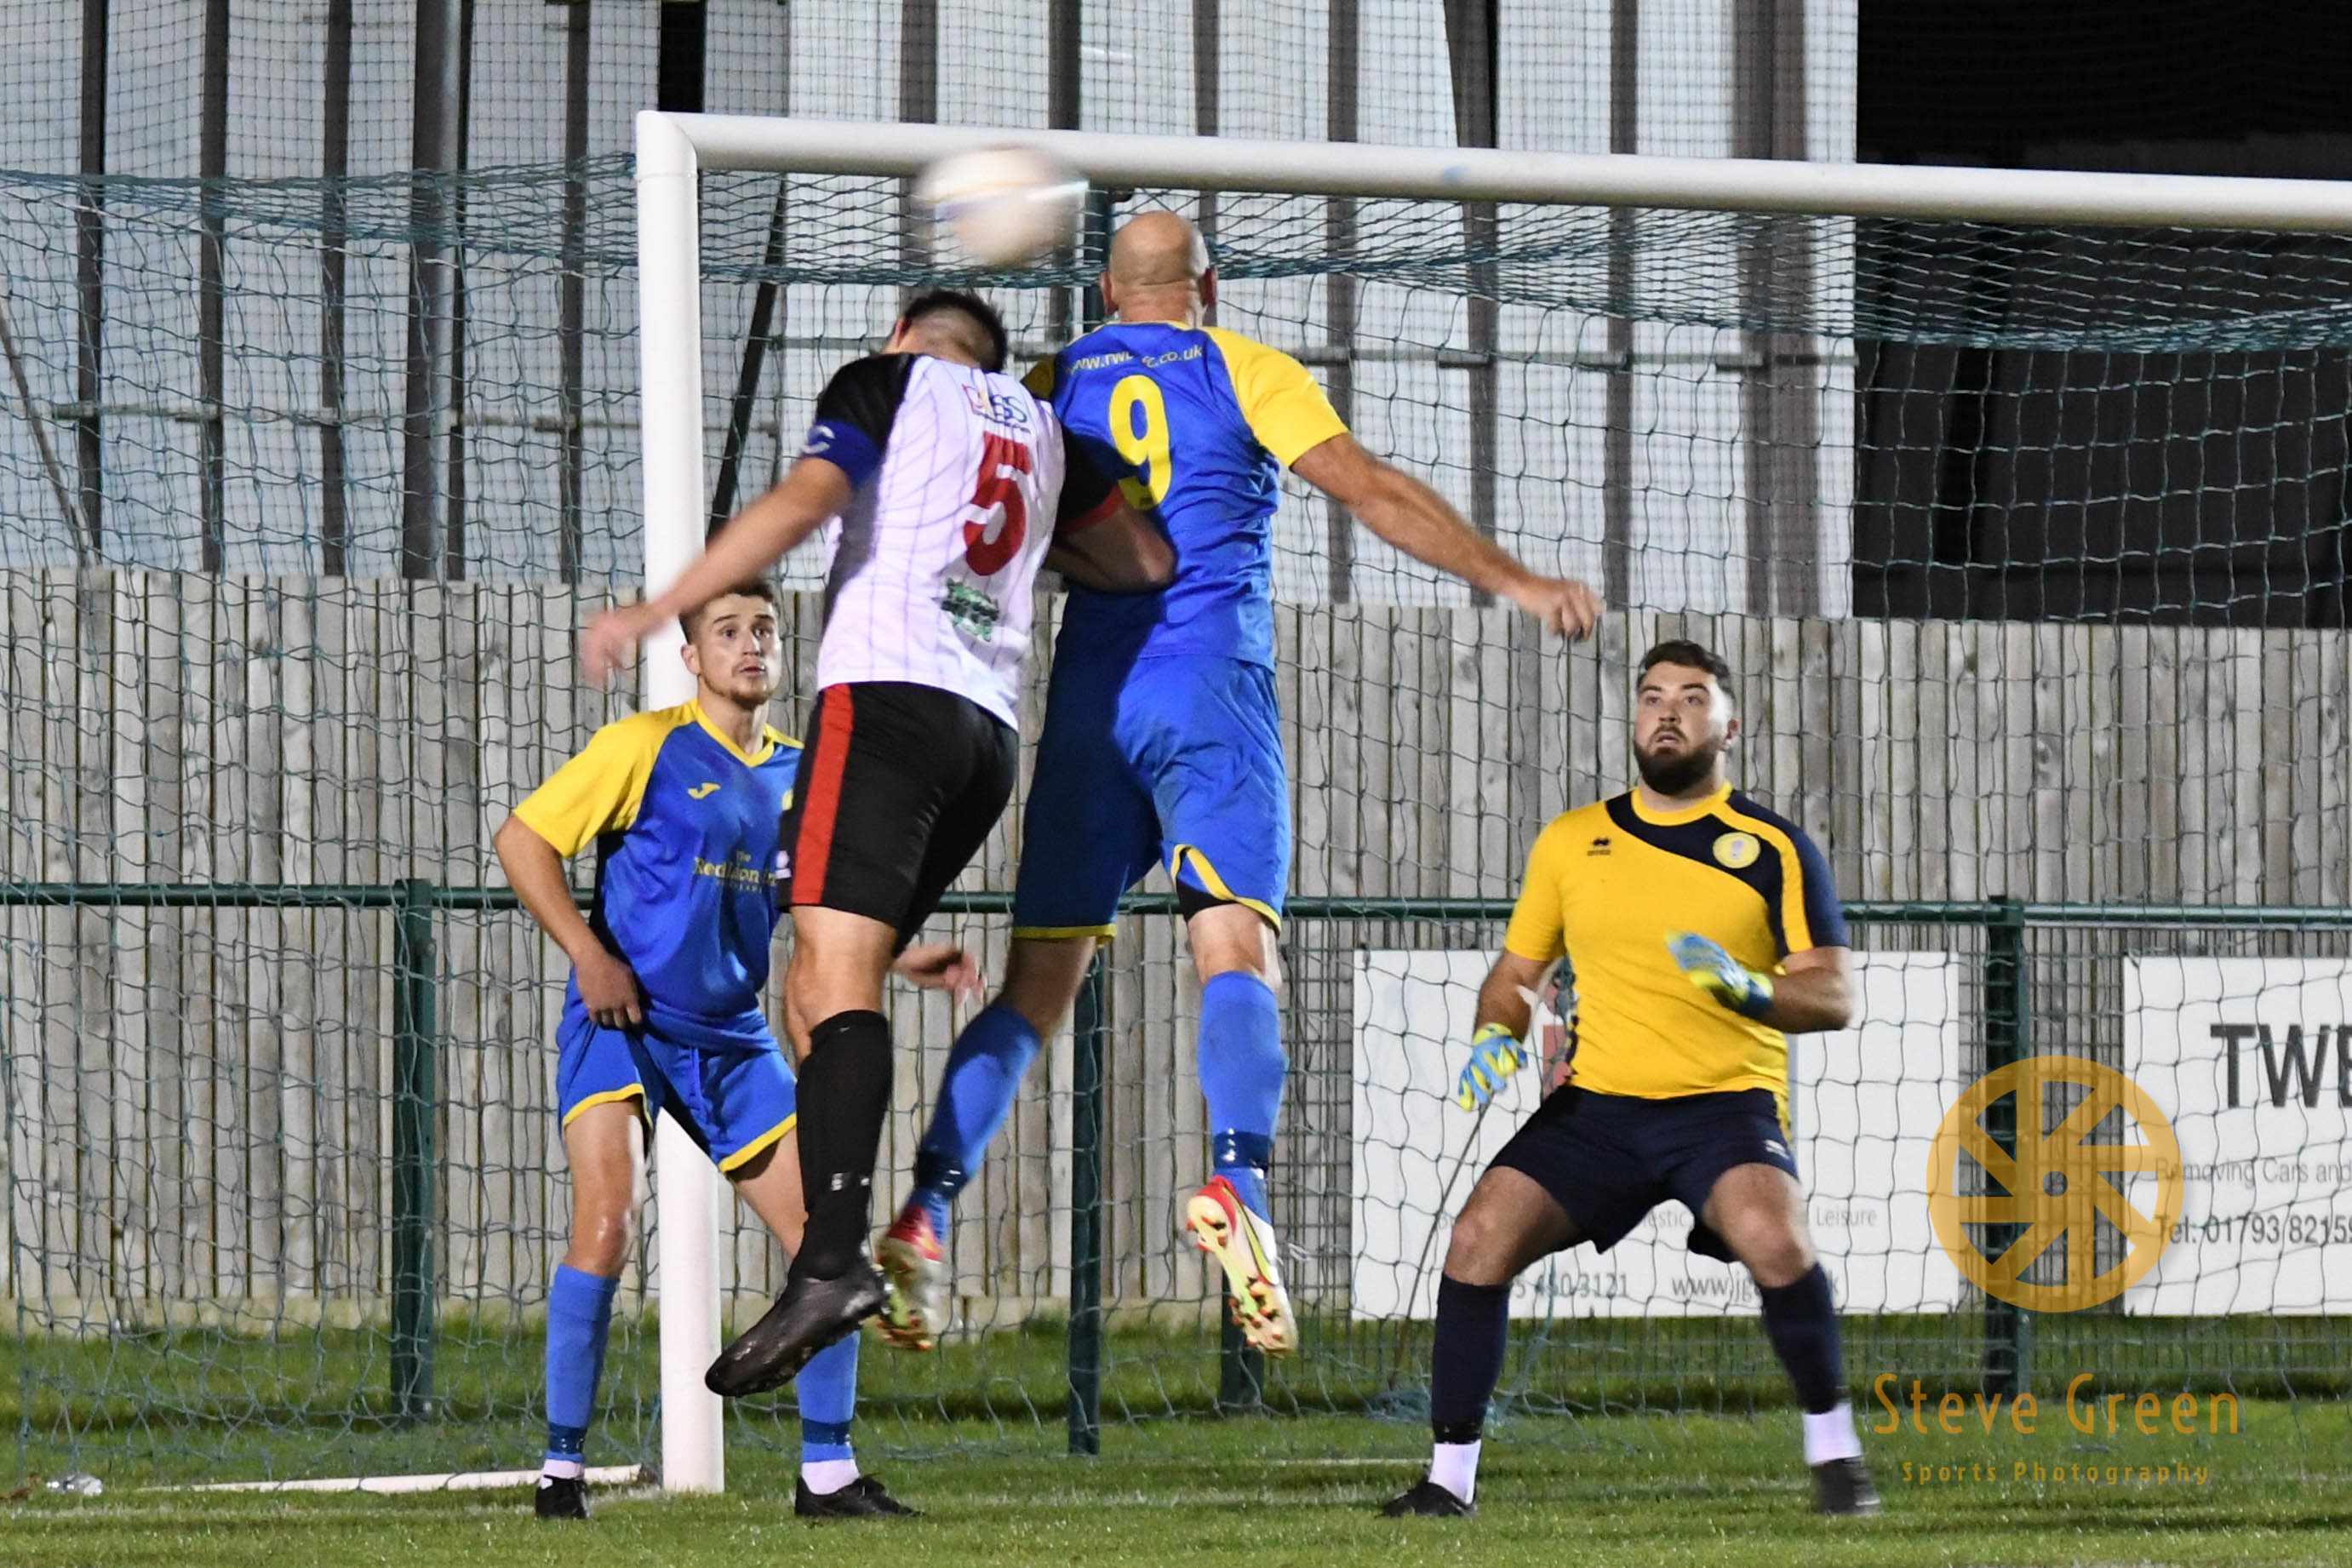 Photos from Royal Wootton Bassett Town's 1-1 draw with Lydney Town (Credit: Steve Green)